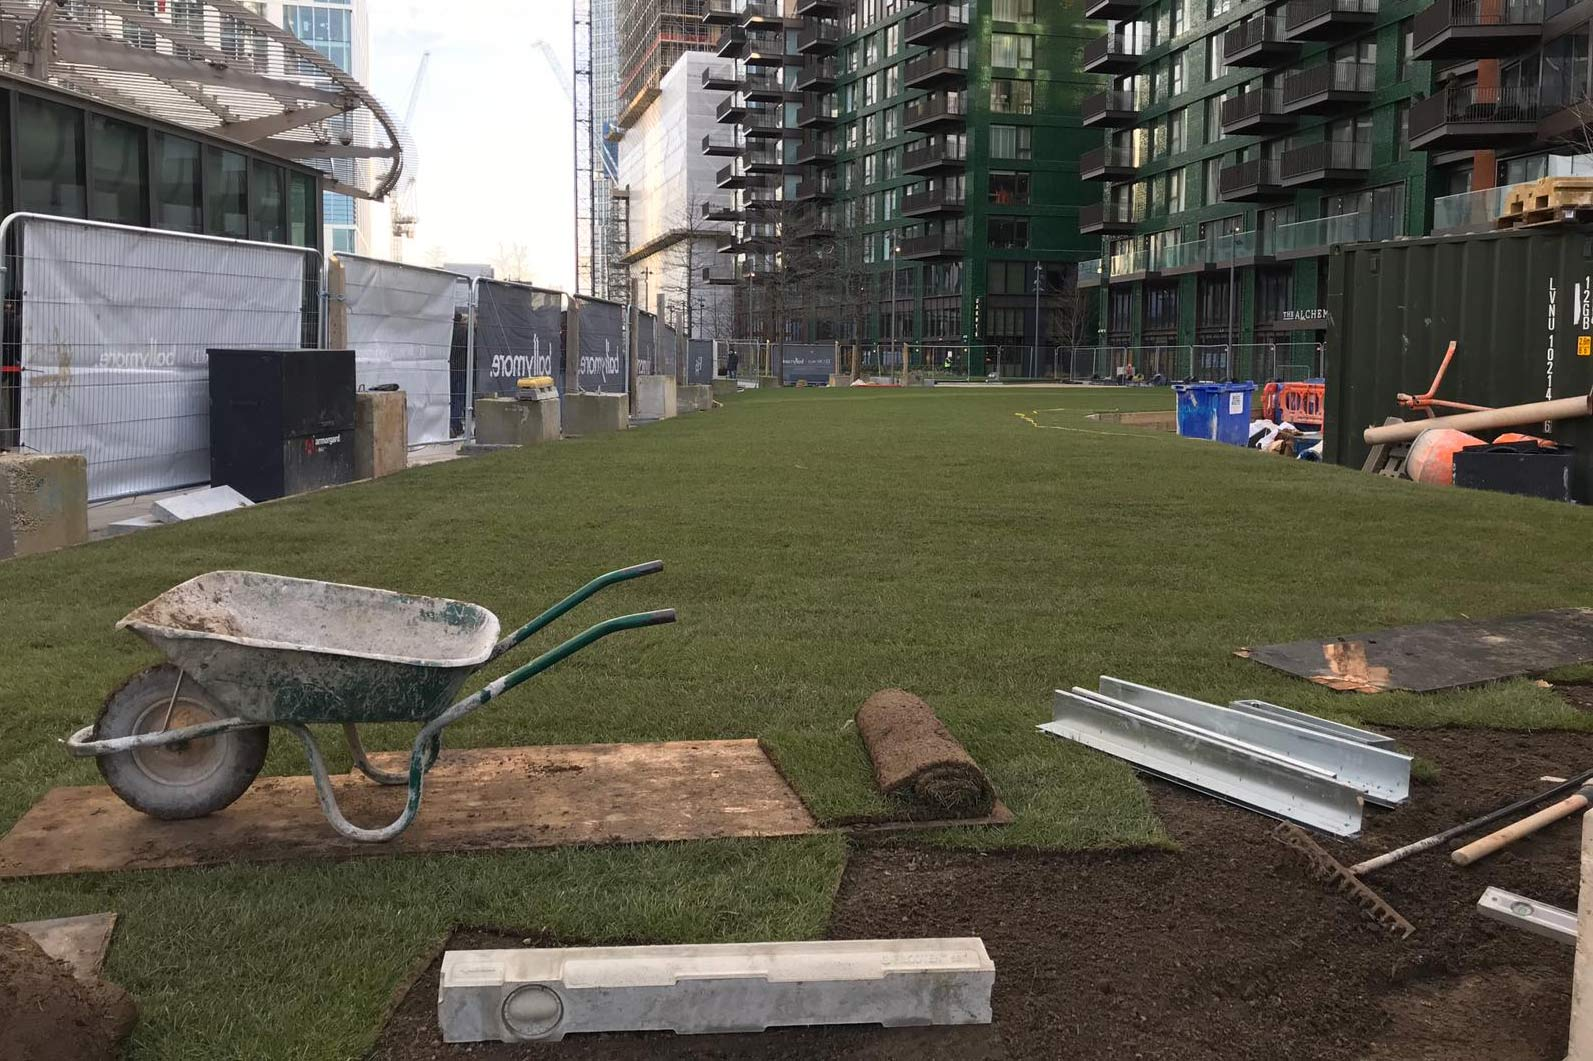 Behind the US Embassy, the Linear Park gets some turf